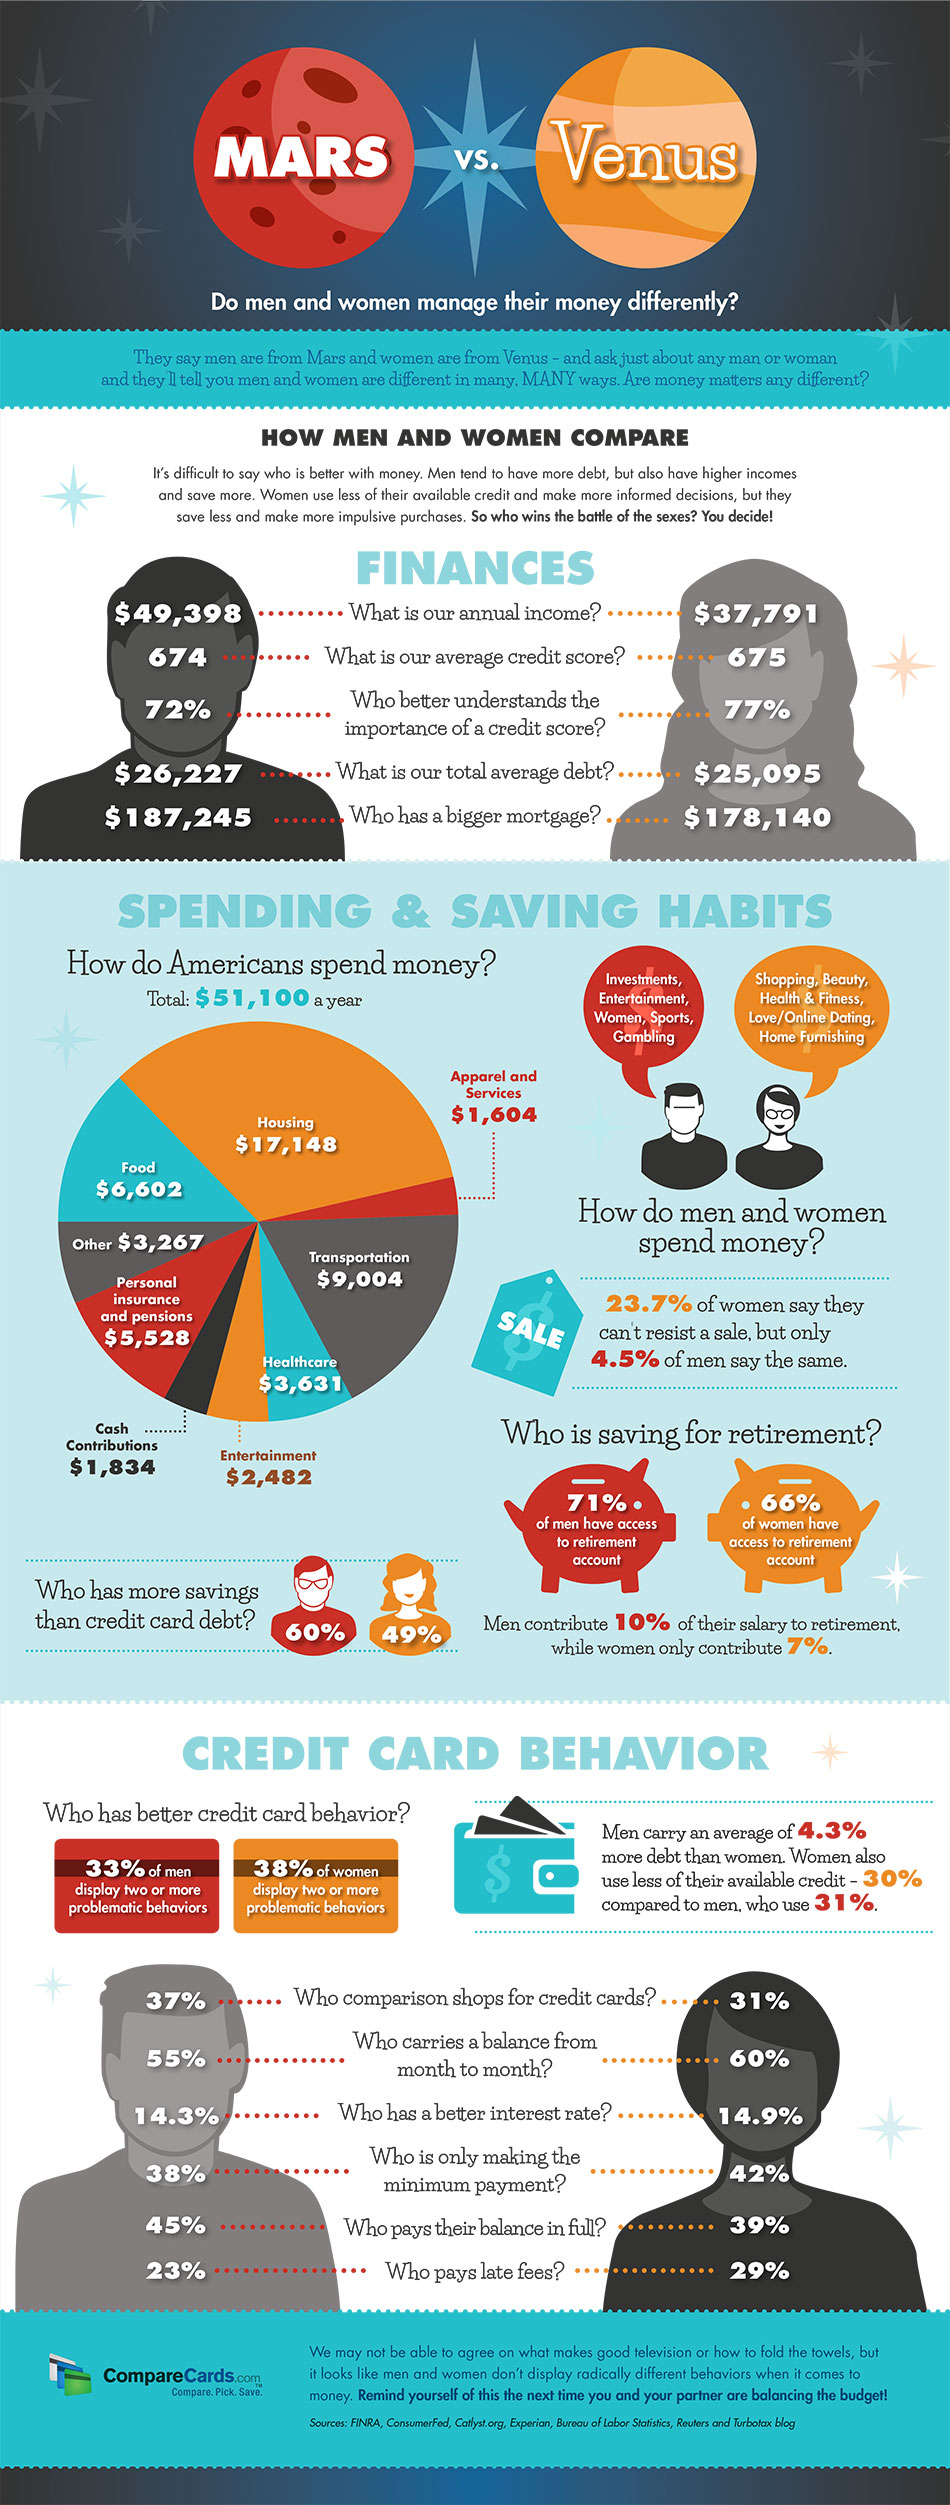 do-men-and-women-manage-money-differently_55cbabf95bb2d